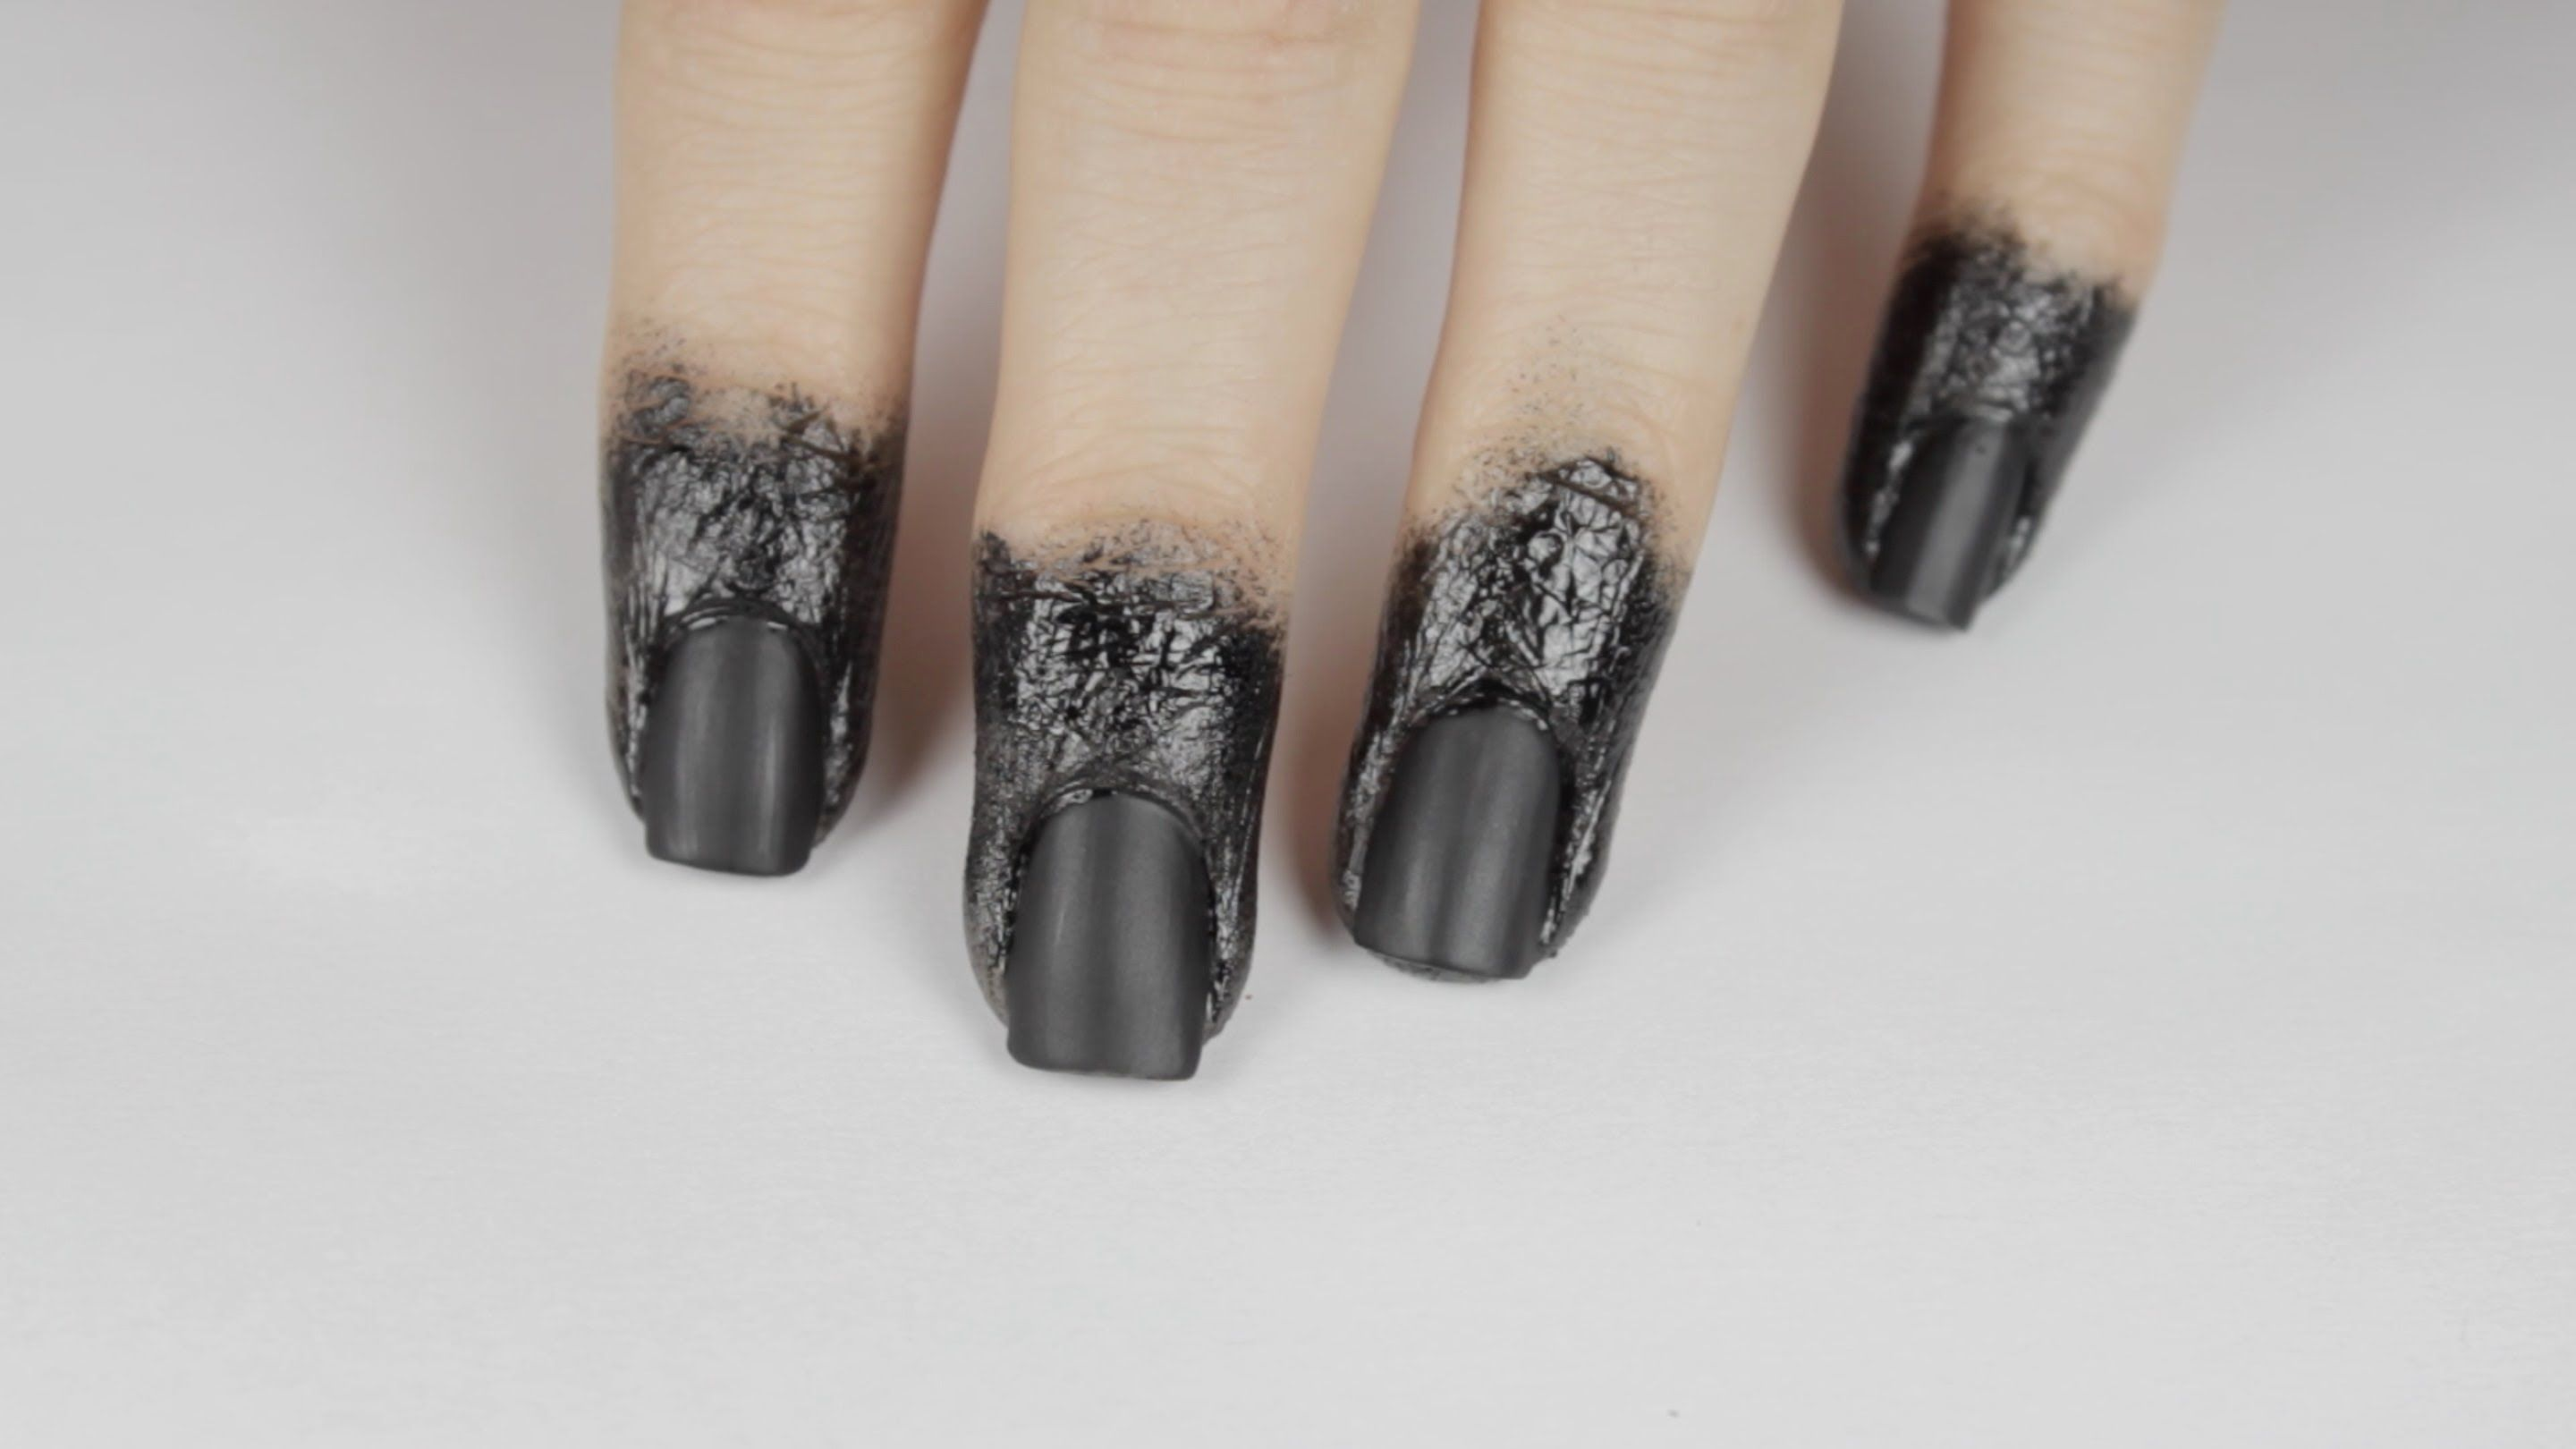 lorde's grammy black nails and dipped fingertips,#cutepolish